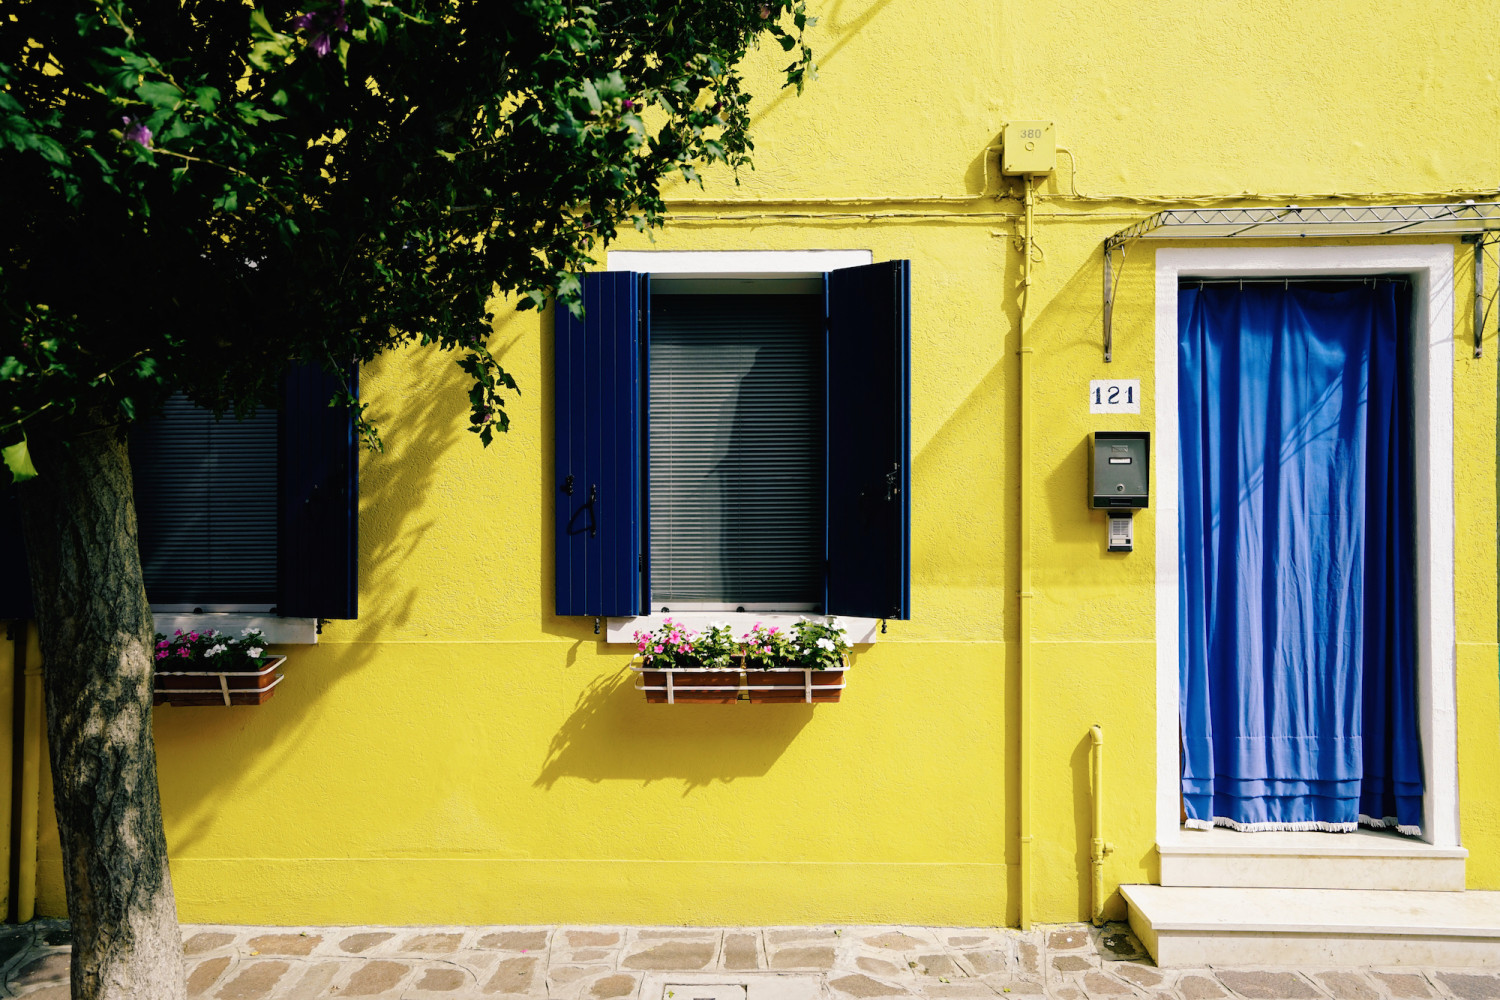 burano-yellow-facade-dante-vincent-photography